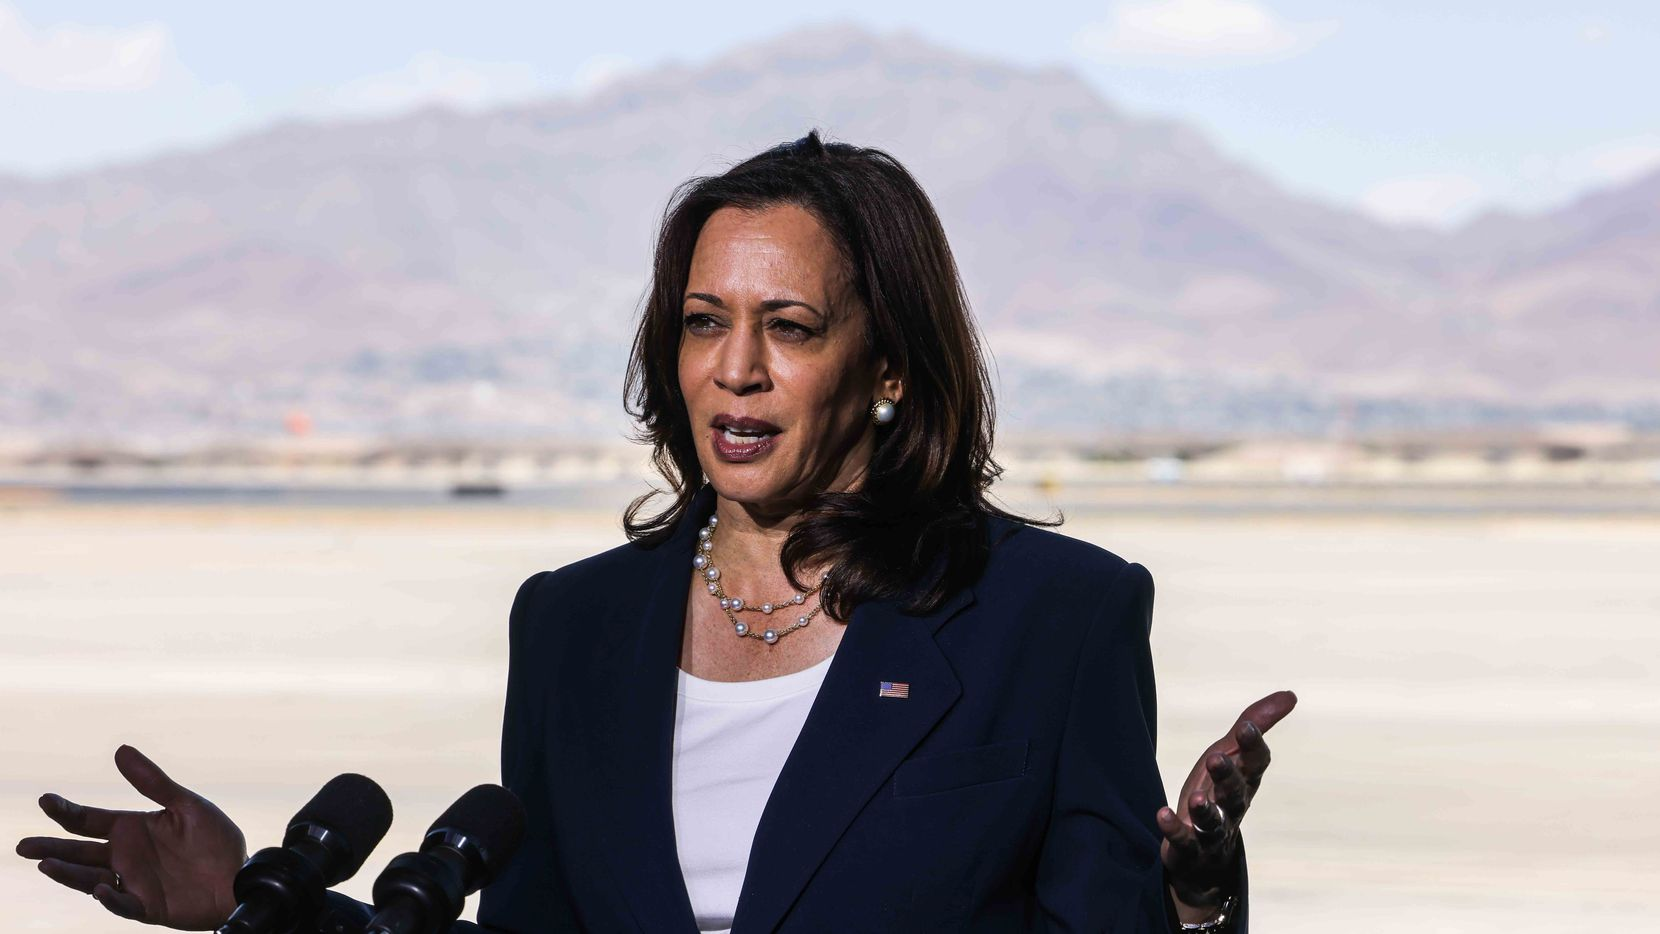 Vice President Kamala Harris speaks with news media at the end of her El Paso border visit on Friday, June 25, 2021.